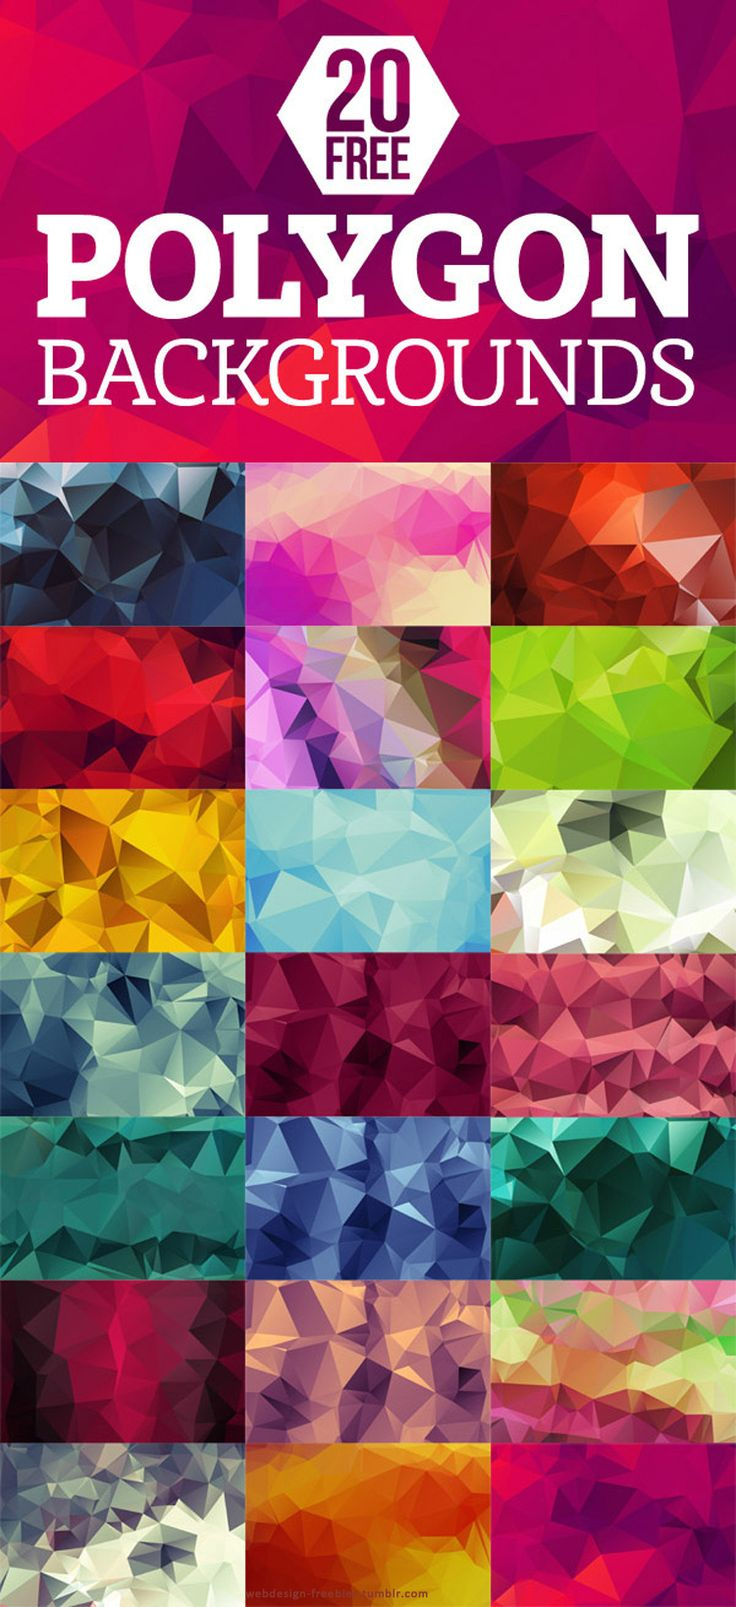 20 Free Geometric Polygon Backgrounds if you would like to Learn Photo Editing fast , i would highly recommend that you check out this Click the link below for more info on this tutorial!>> http://www.squeezeframes.com/0/171/171377/85720.html